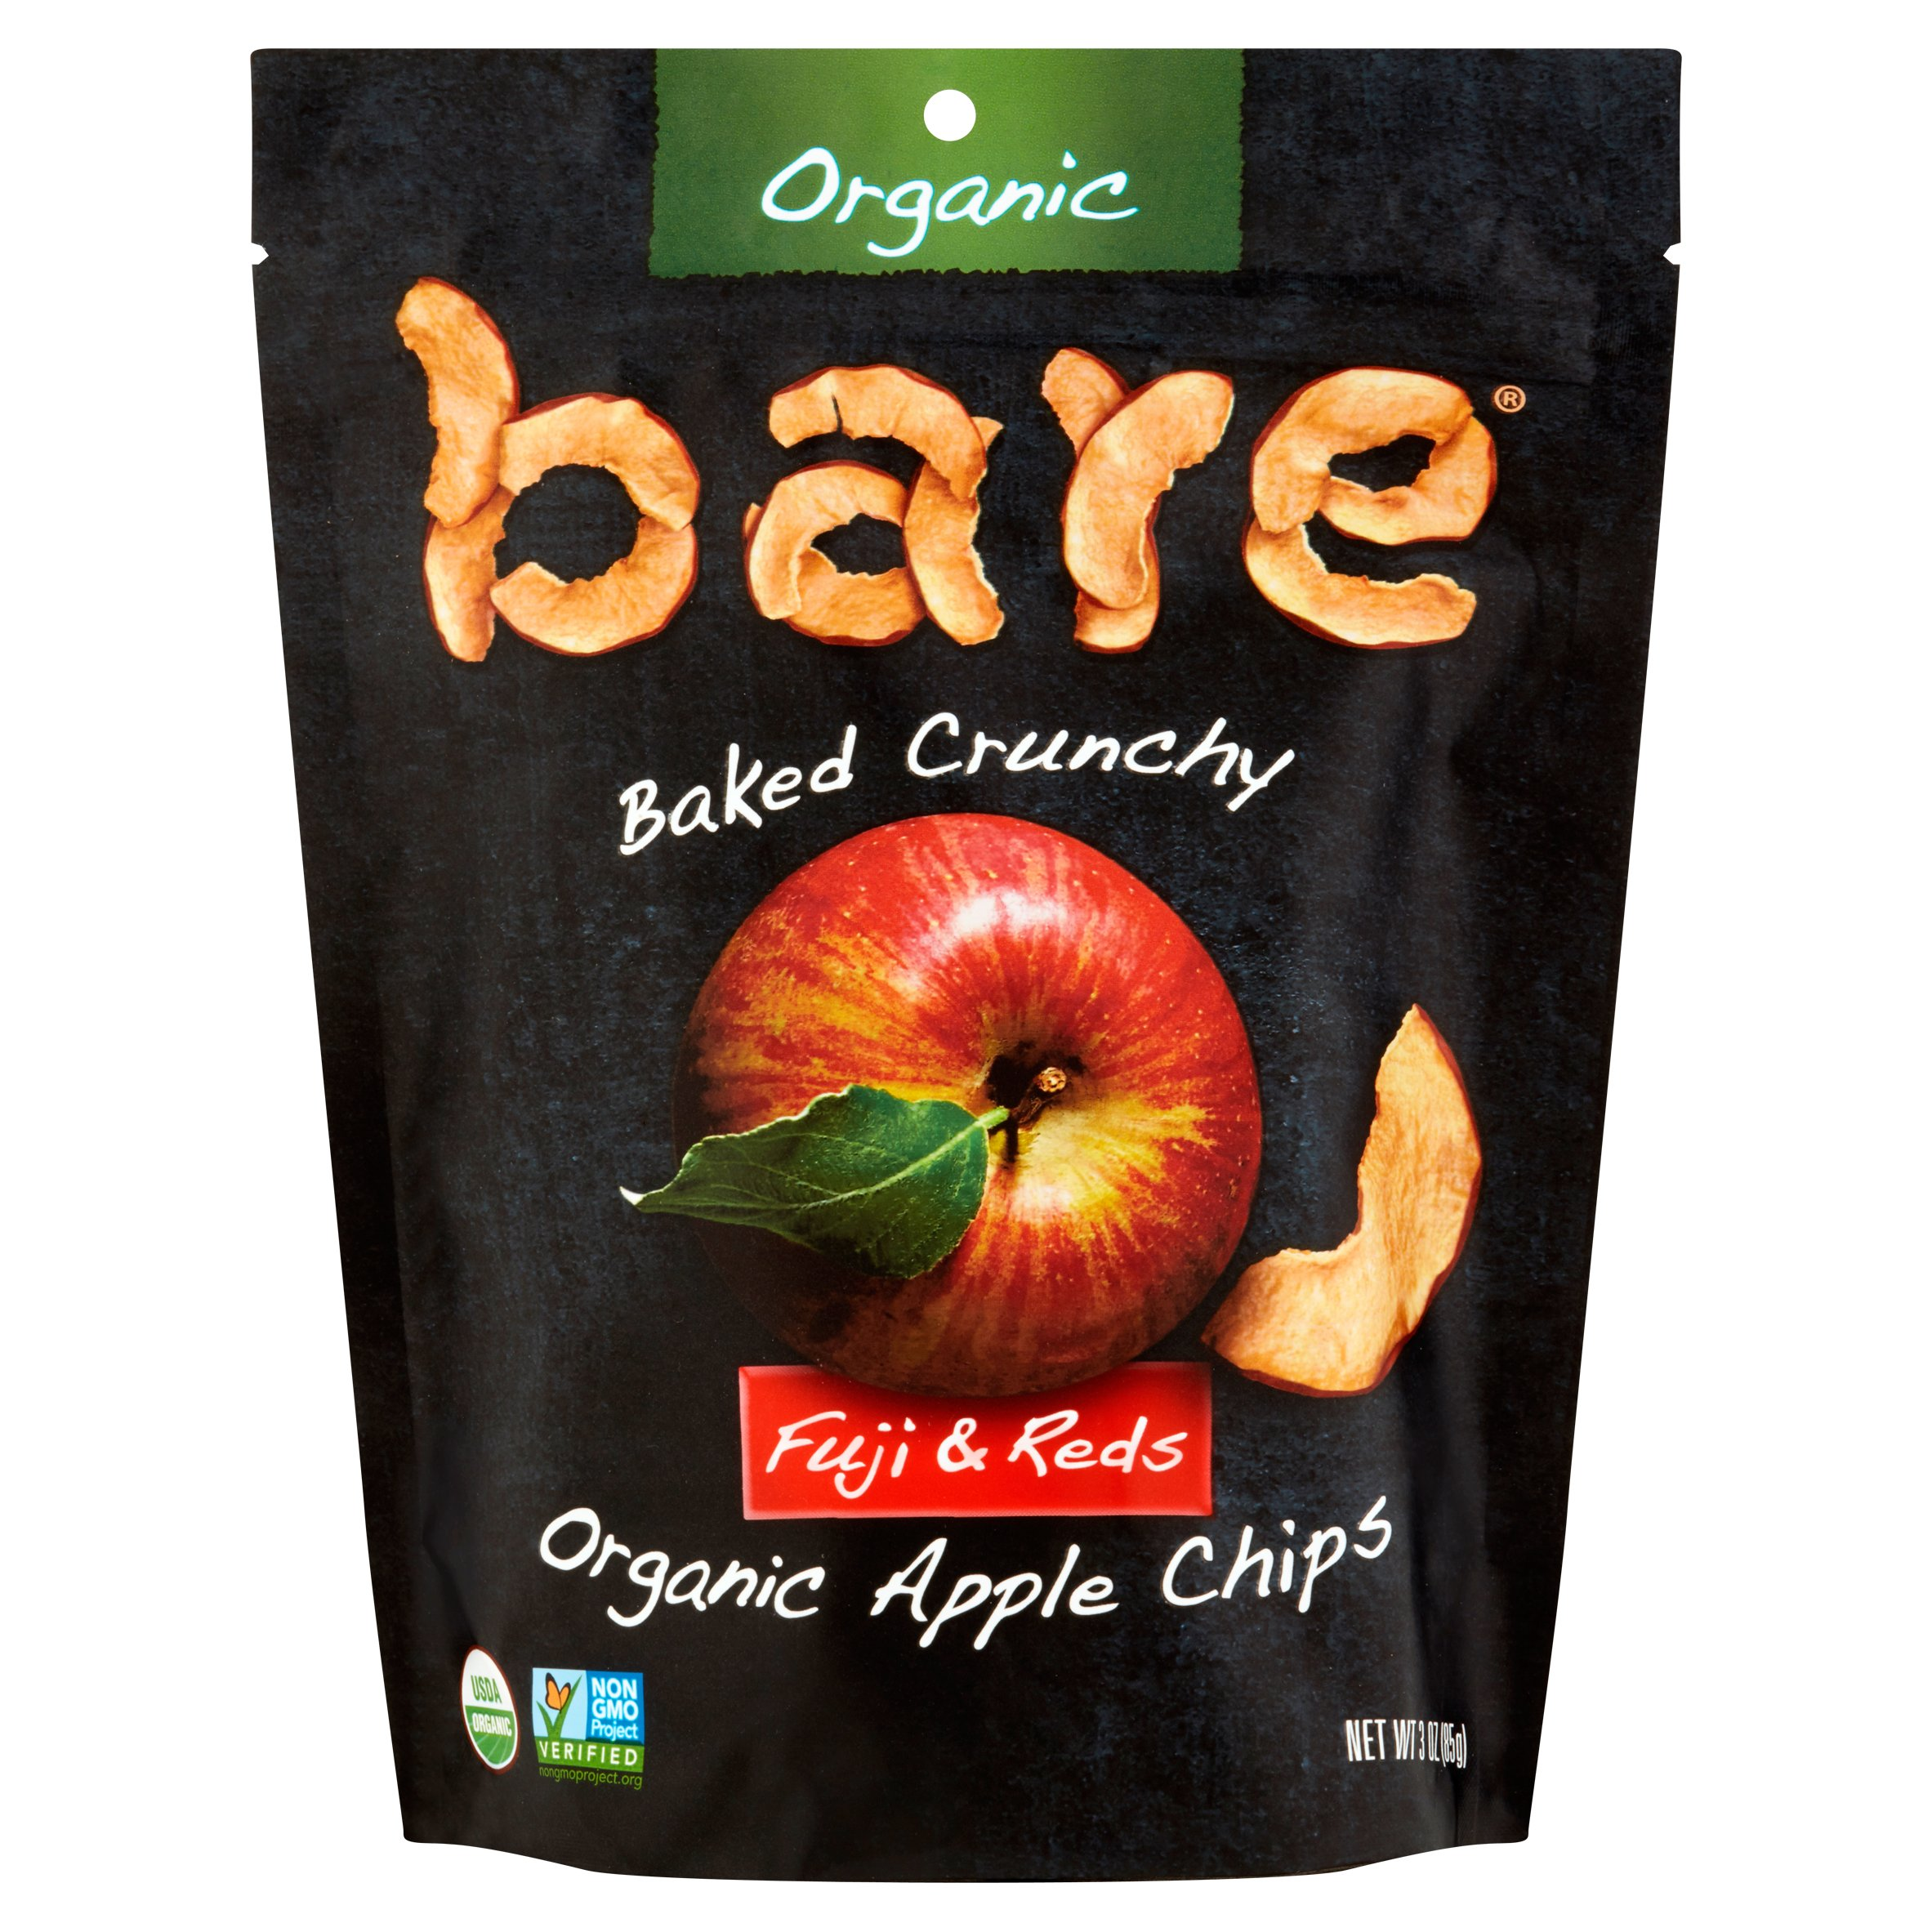 Bare Baked Crunchy Fuji & Reds Organic Apple Chips, 3 oz, 12 pack